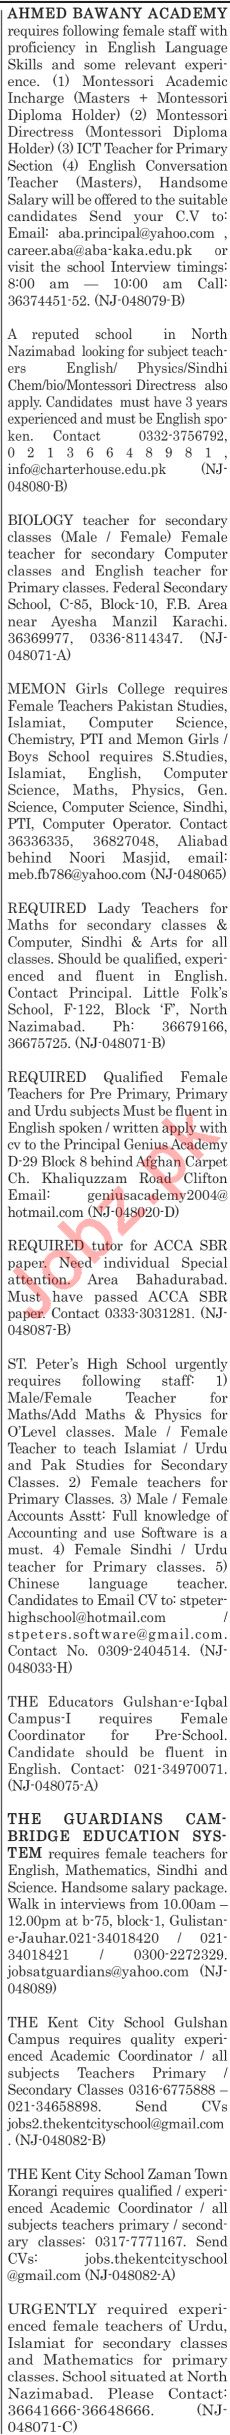 The News Sunday Classified Ads 21st July 2019 for Teachers